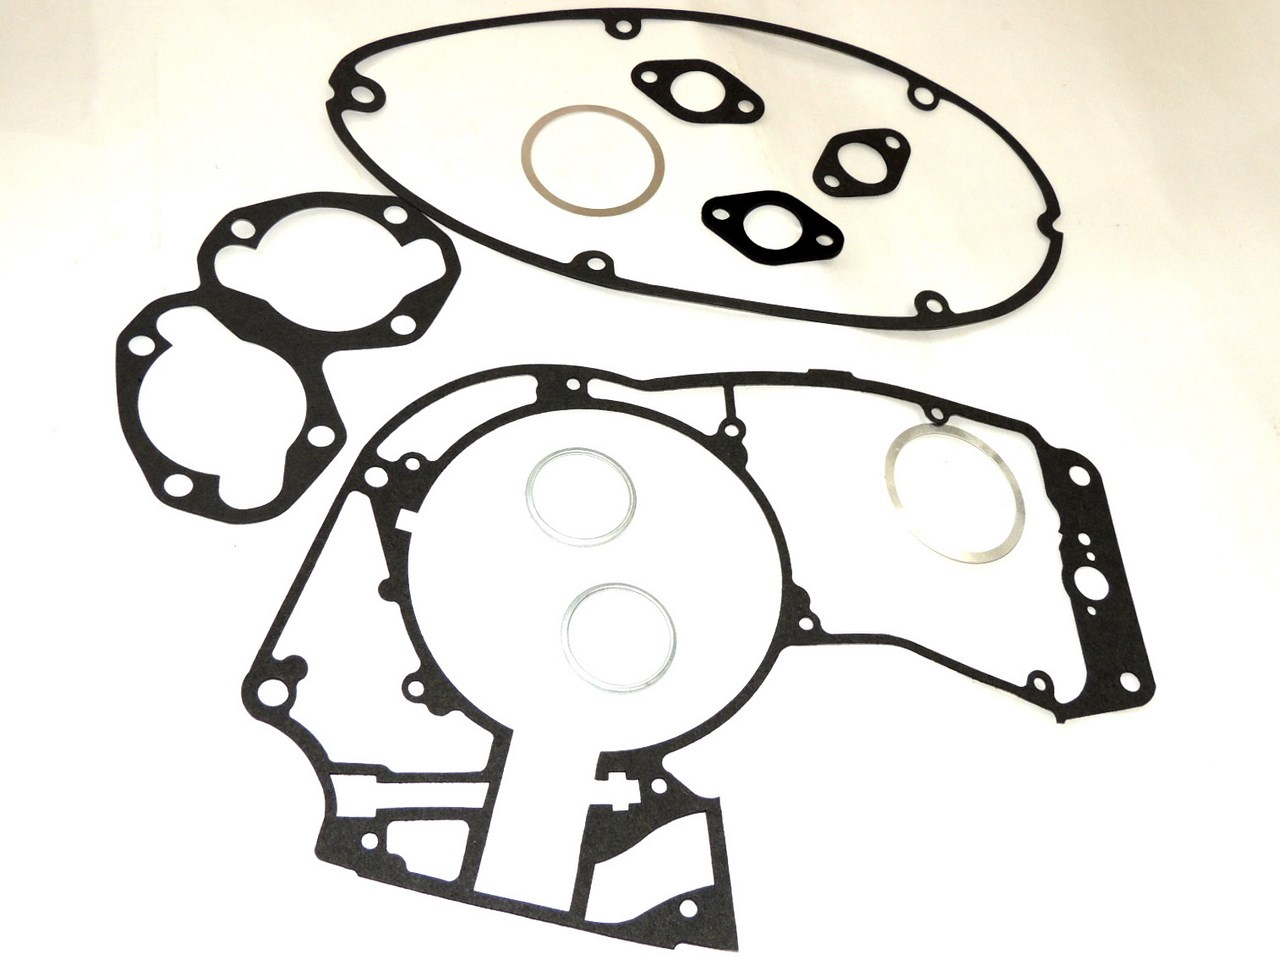 Engine gaskets, set - JAWA 350 Panelka